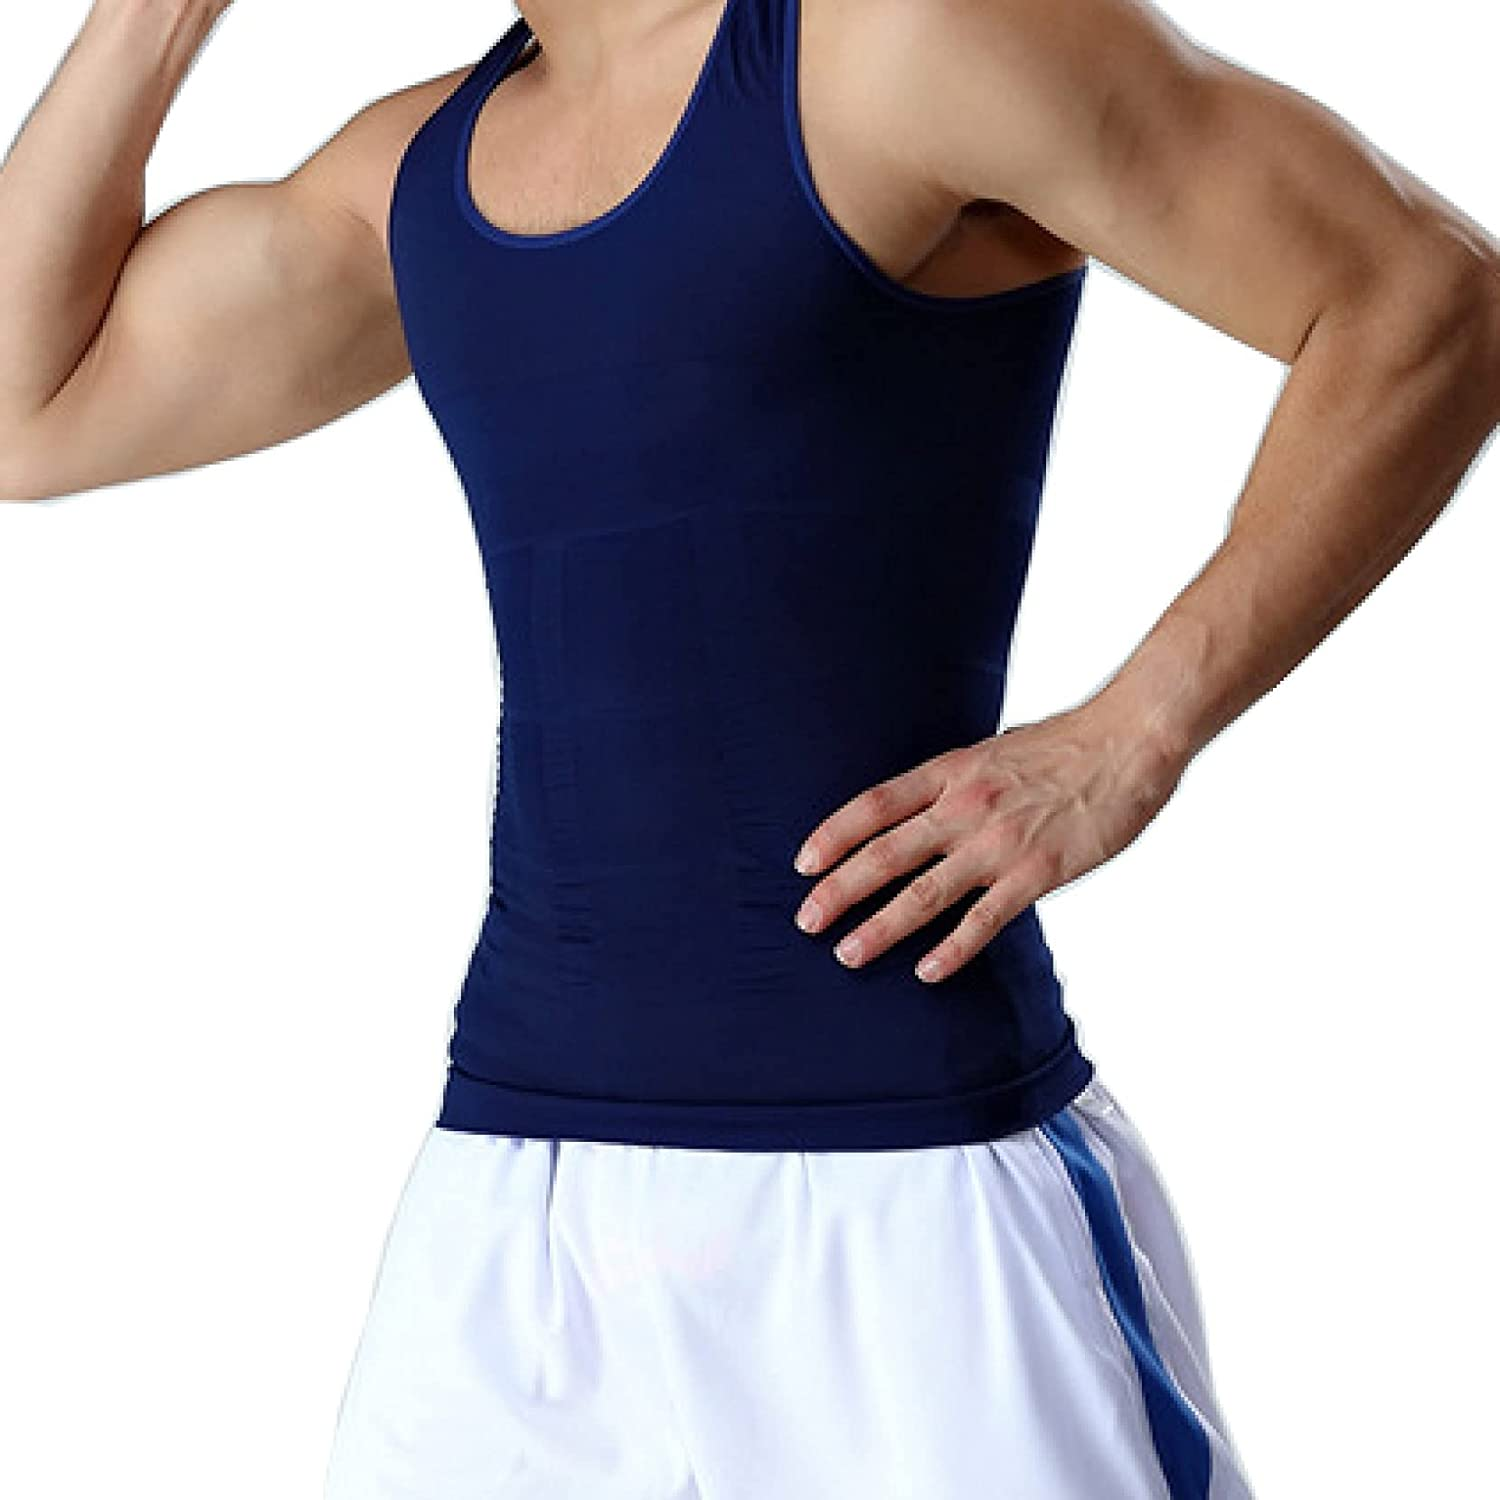 ChyJoey Men Slimming Compression Shirt Elastic Shapewear Tank Tops Tight Waist Trainer Fitness Fat Burner for Gym Exercise